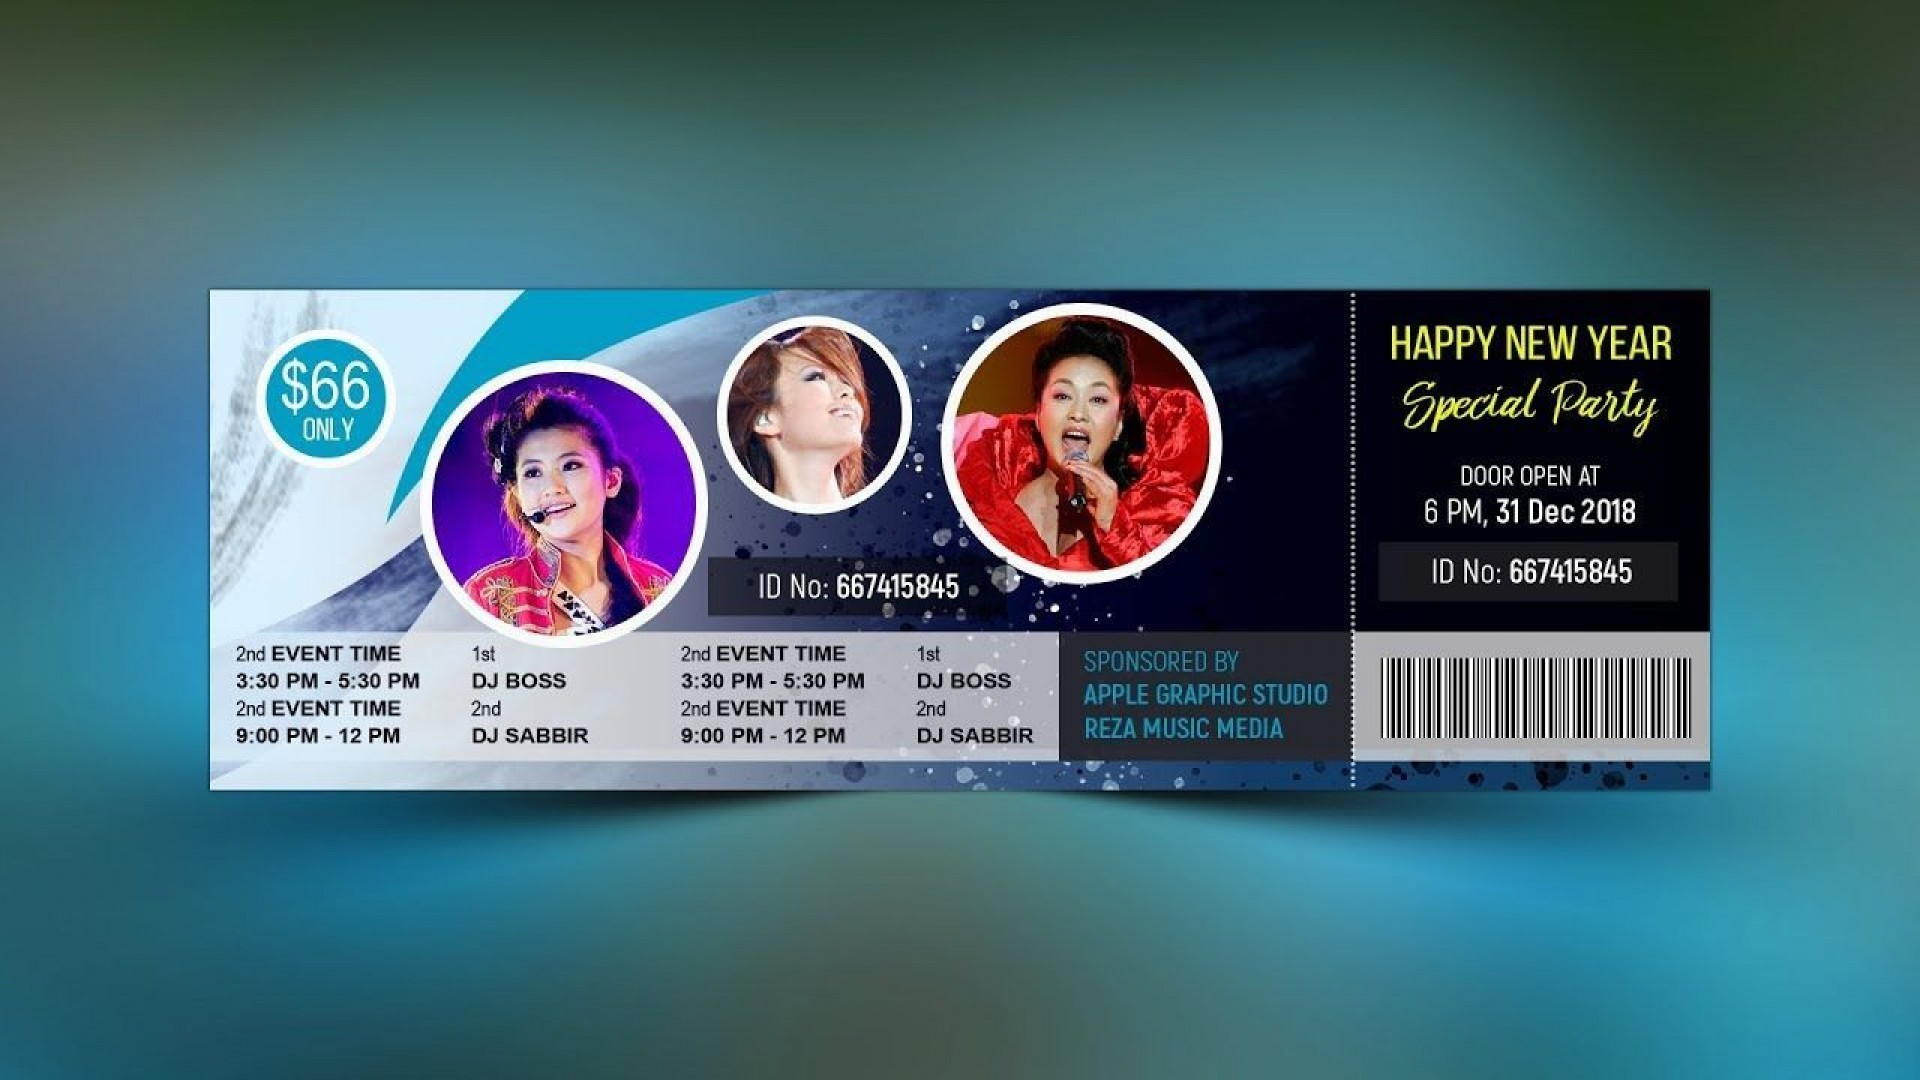 005 Excellent Event Ticket Template Photoshop High Definition  Design Psd Free Download1920